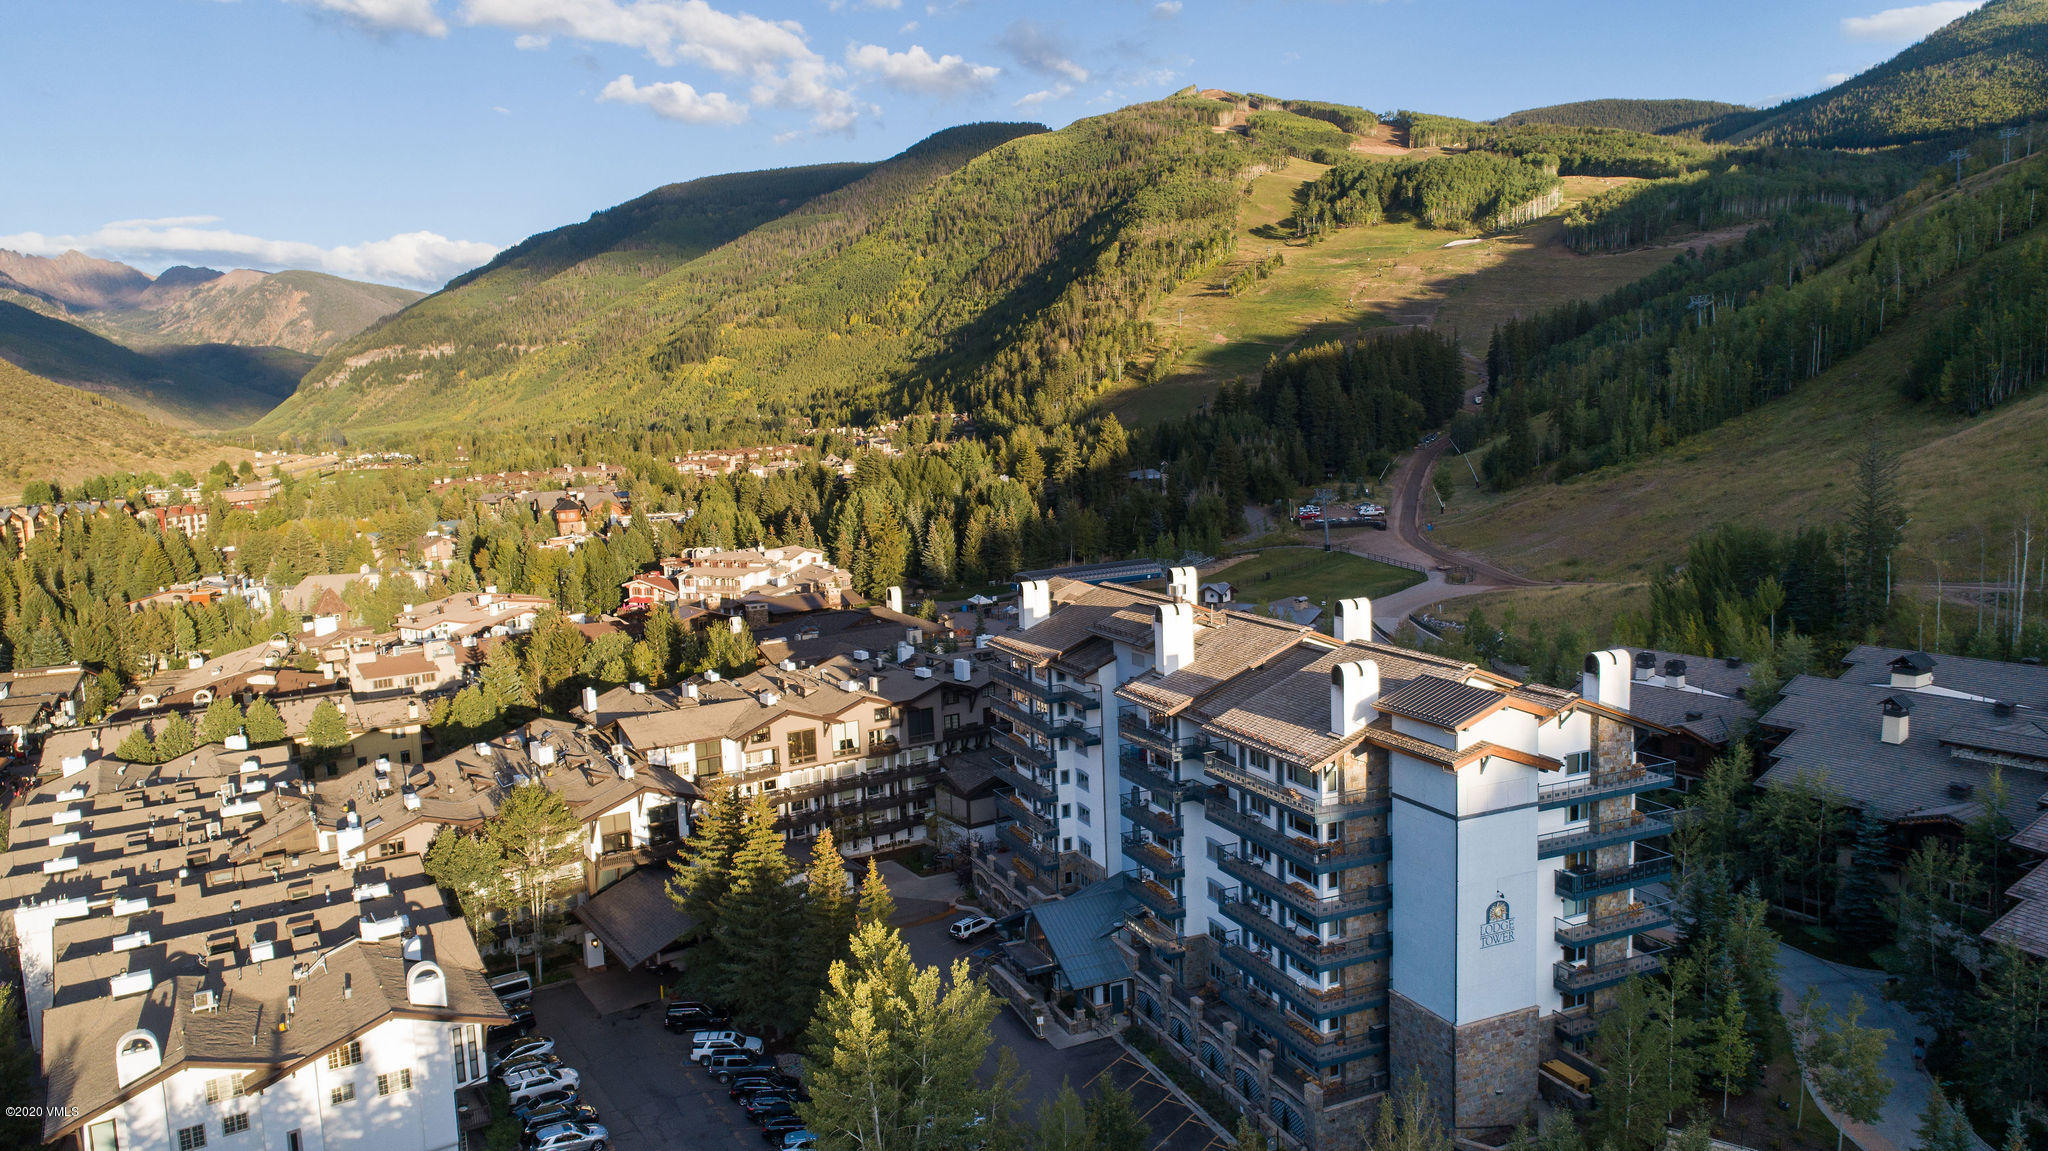 When it comes to location, it doesn't get much better than this. Nestled just steps away from Vail's Gondola One, this 2-bed 3-bath corner residence has a Premium rating and features a wraparound deck, granite throughout, air-conditioning and lock off capability. Luxurious amenities include: full-service spa, fitness center, outdoor pool/hot tub, front desk, concierge services, ski valet, heated parking and storage. Charming, pedestrian friendly Vail Village has everything you could need or want right at your fingertips.